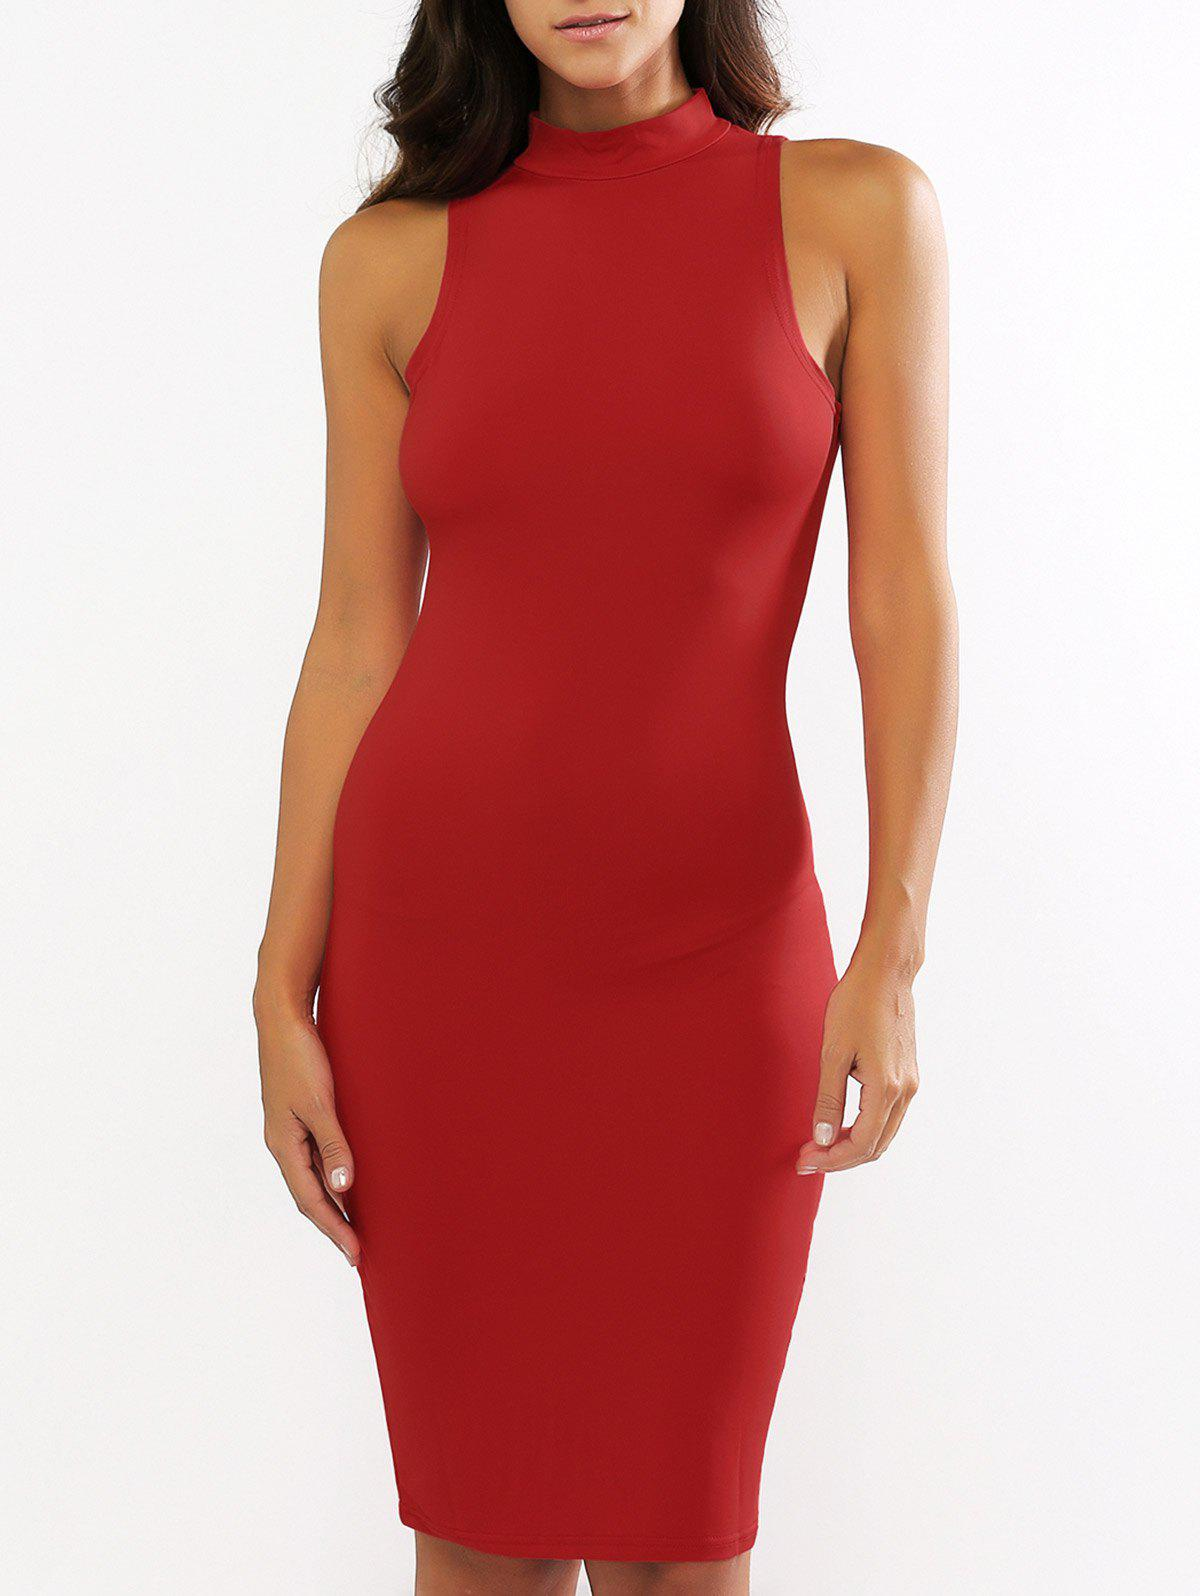 Stand Collar Sleeveless Bodycon Knee Length Dress - RED XL